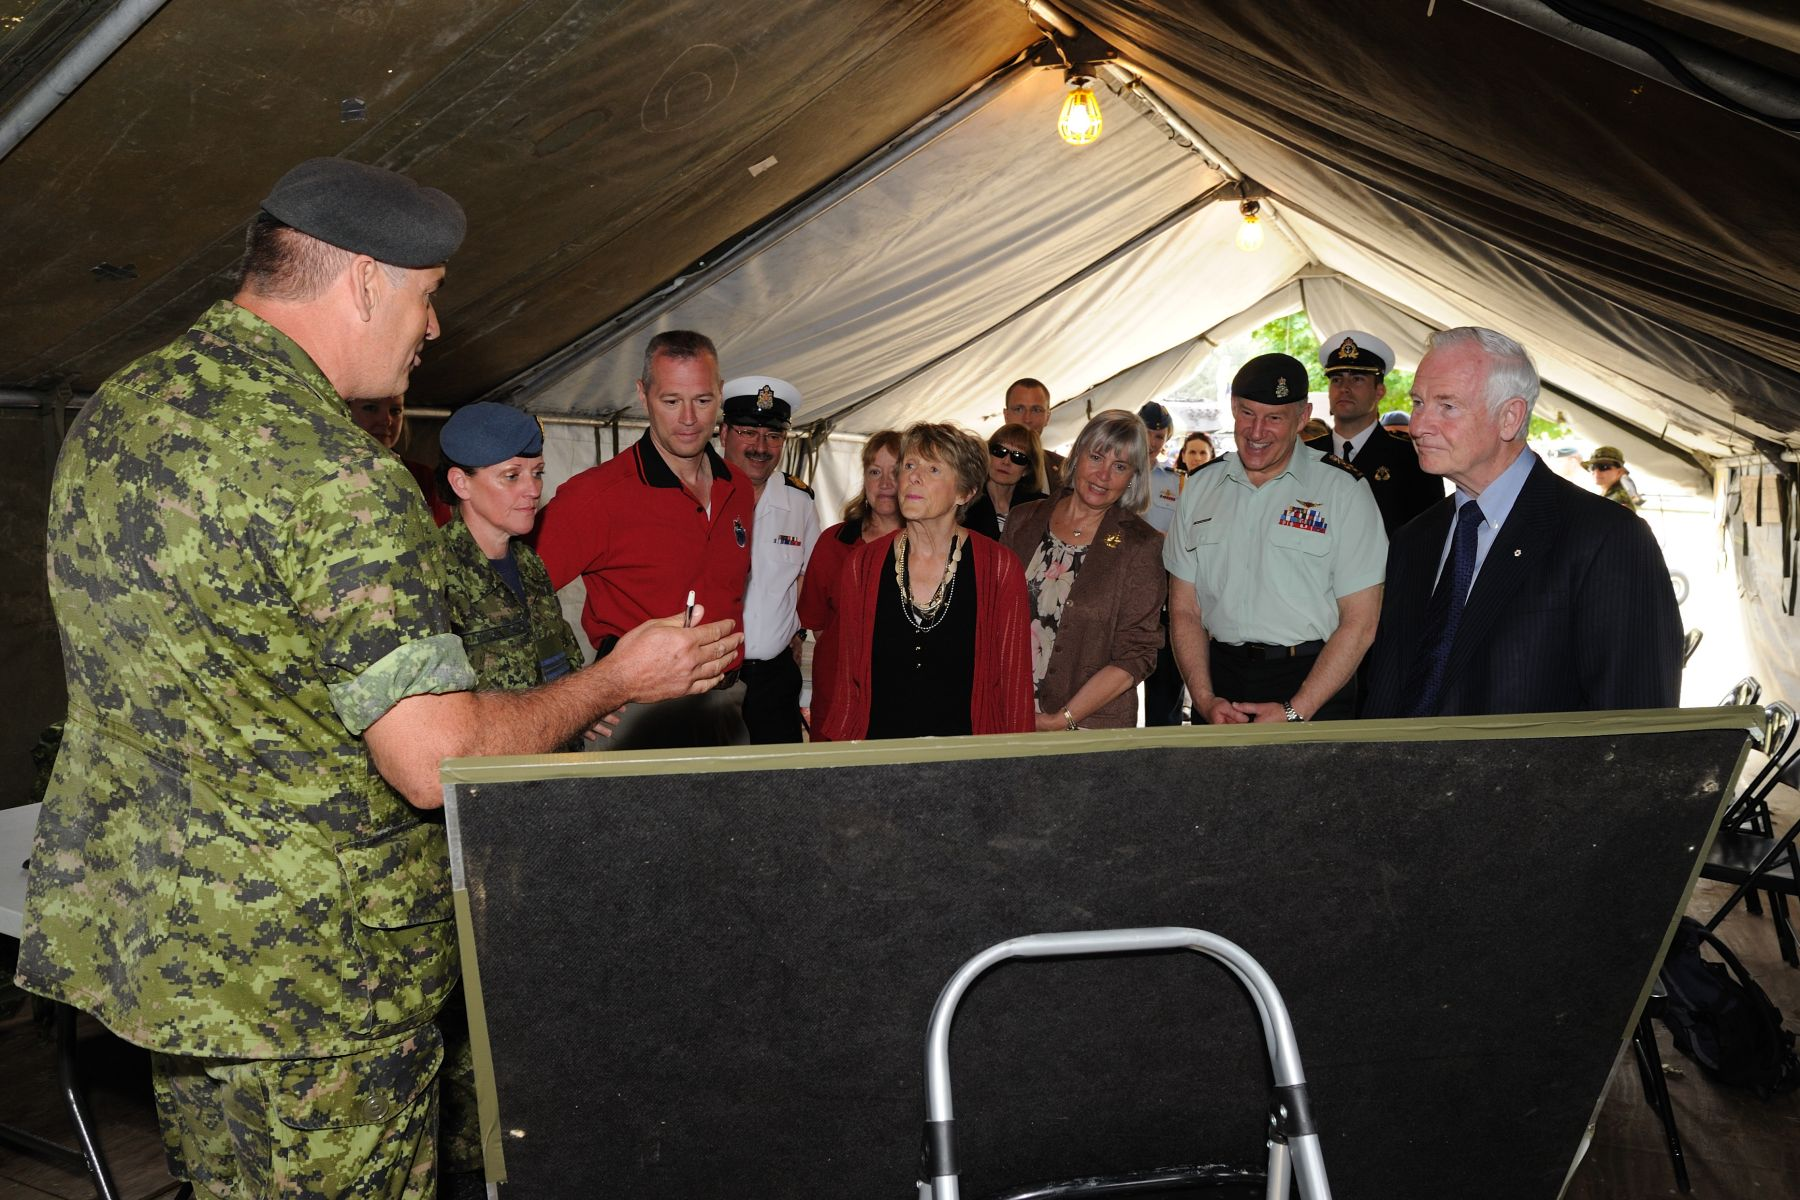 Their Excellencies the Right Honourable David Johnston, Governor General and Commander-in-Chief of Canada, and Mrs. Sharon Johnston visited our military troops and their families on June 4, 2011, as part of Canadian Forces Day.